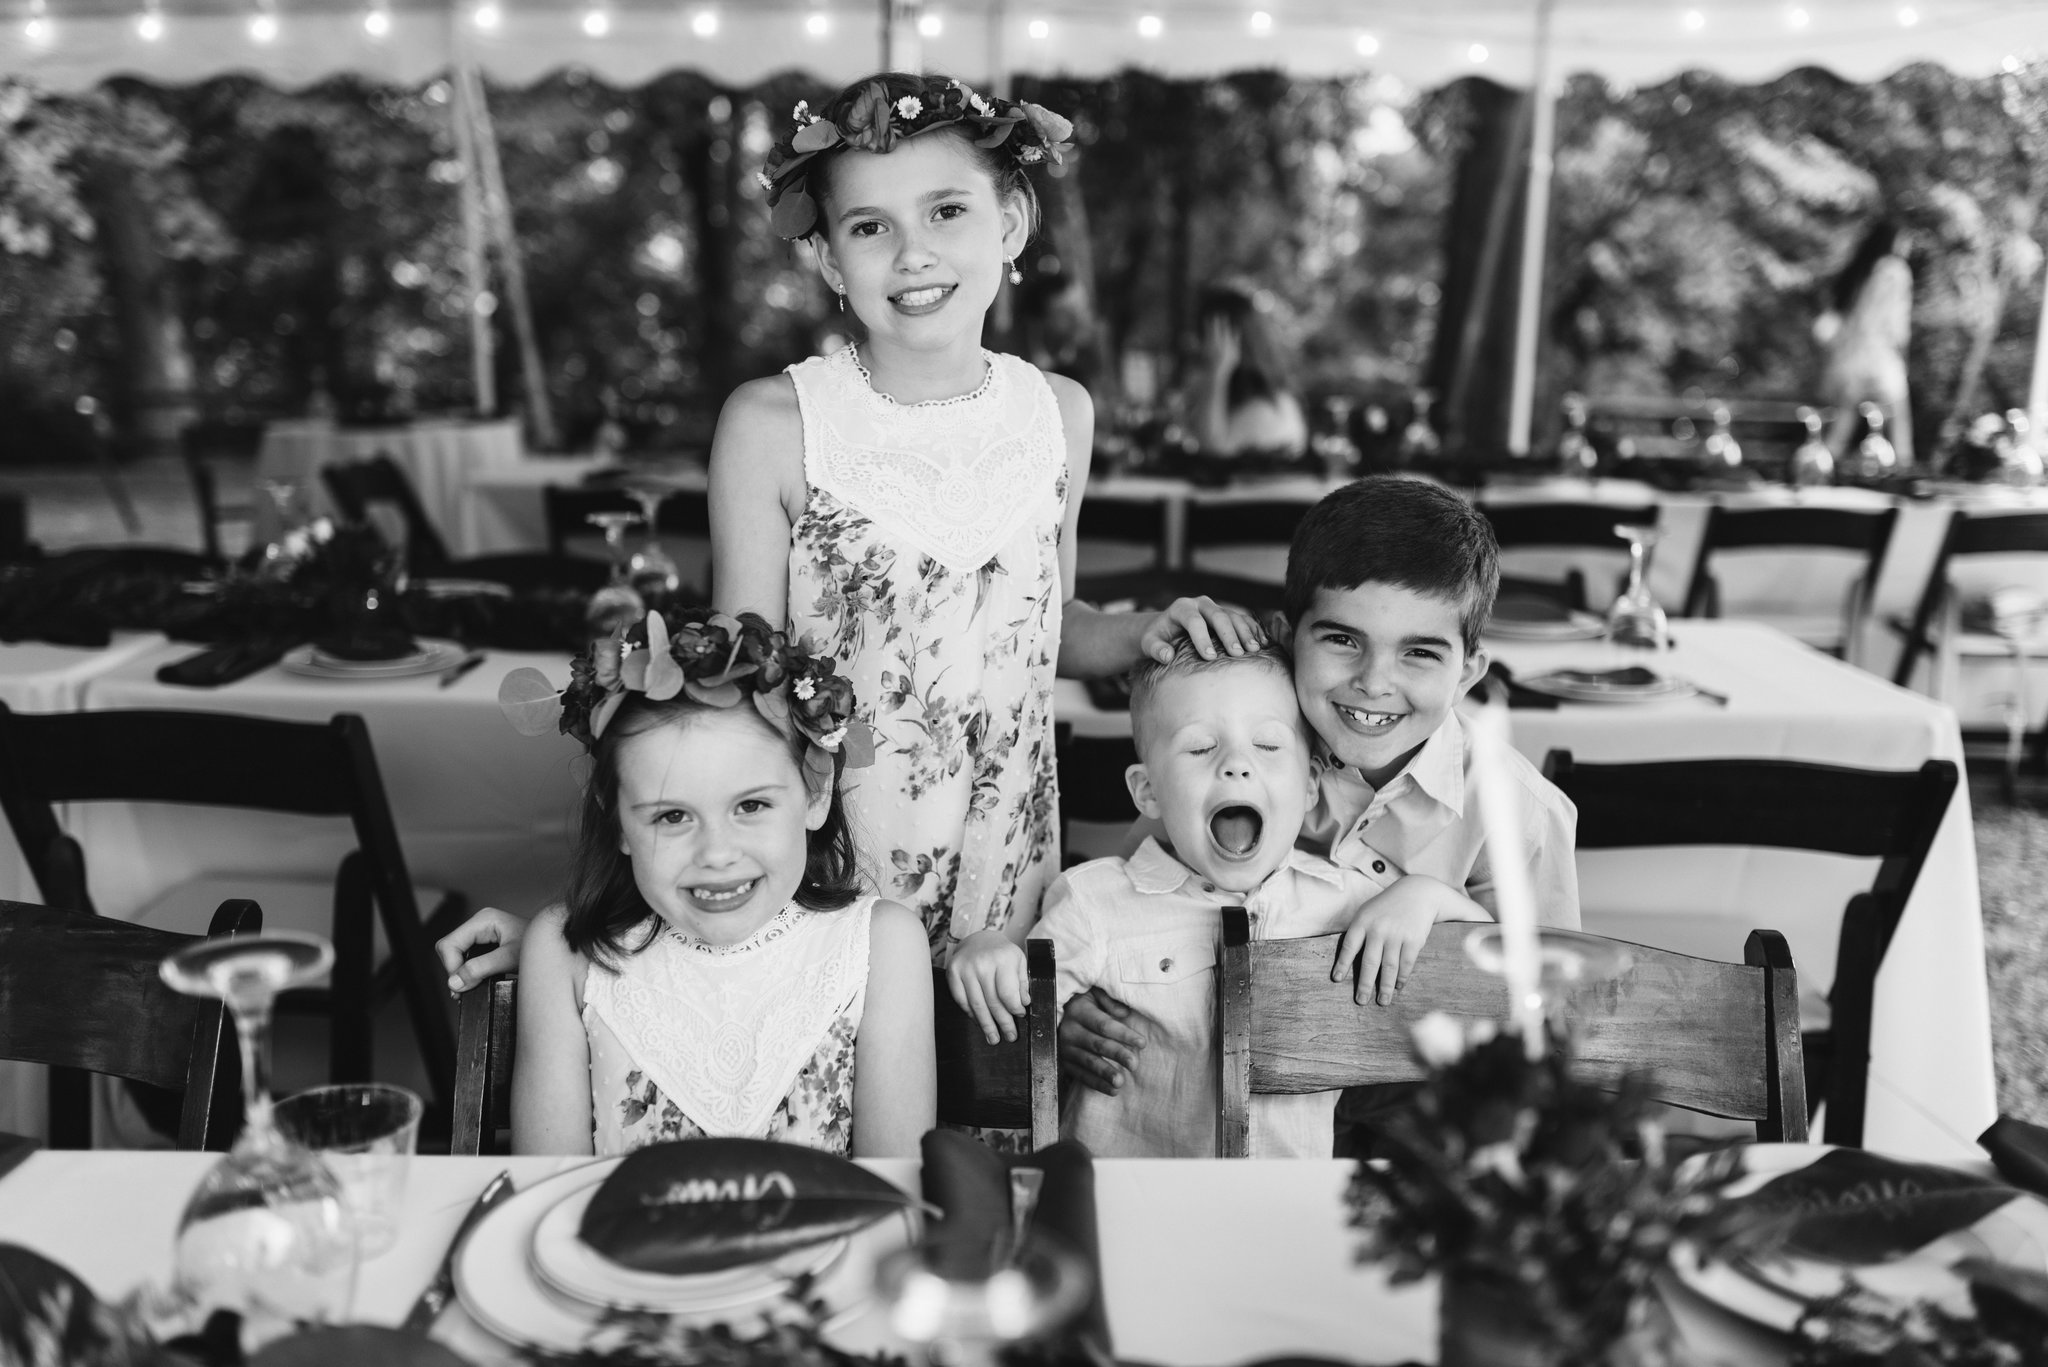 Annapolis, Quaker Wedding, Maryland Wedding Photographer, Intimate, Small Wedding, Vintage, DIY, Portrait of Kids at Reception, Black and White Photo, Flower Girls